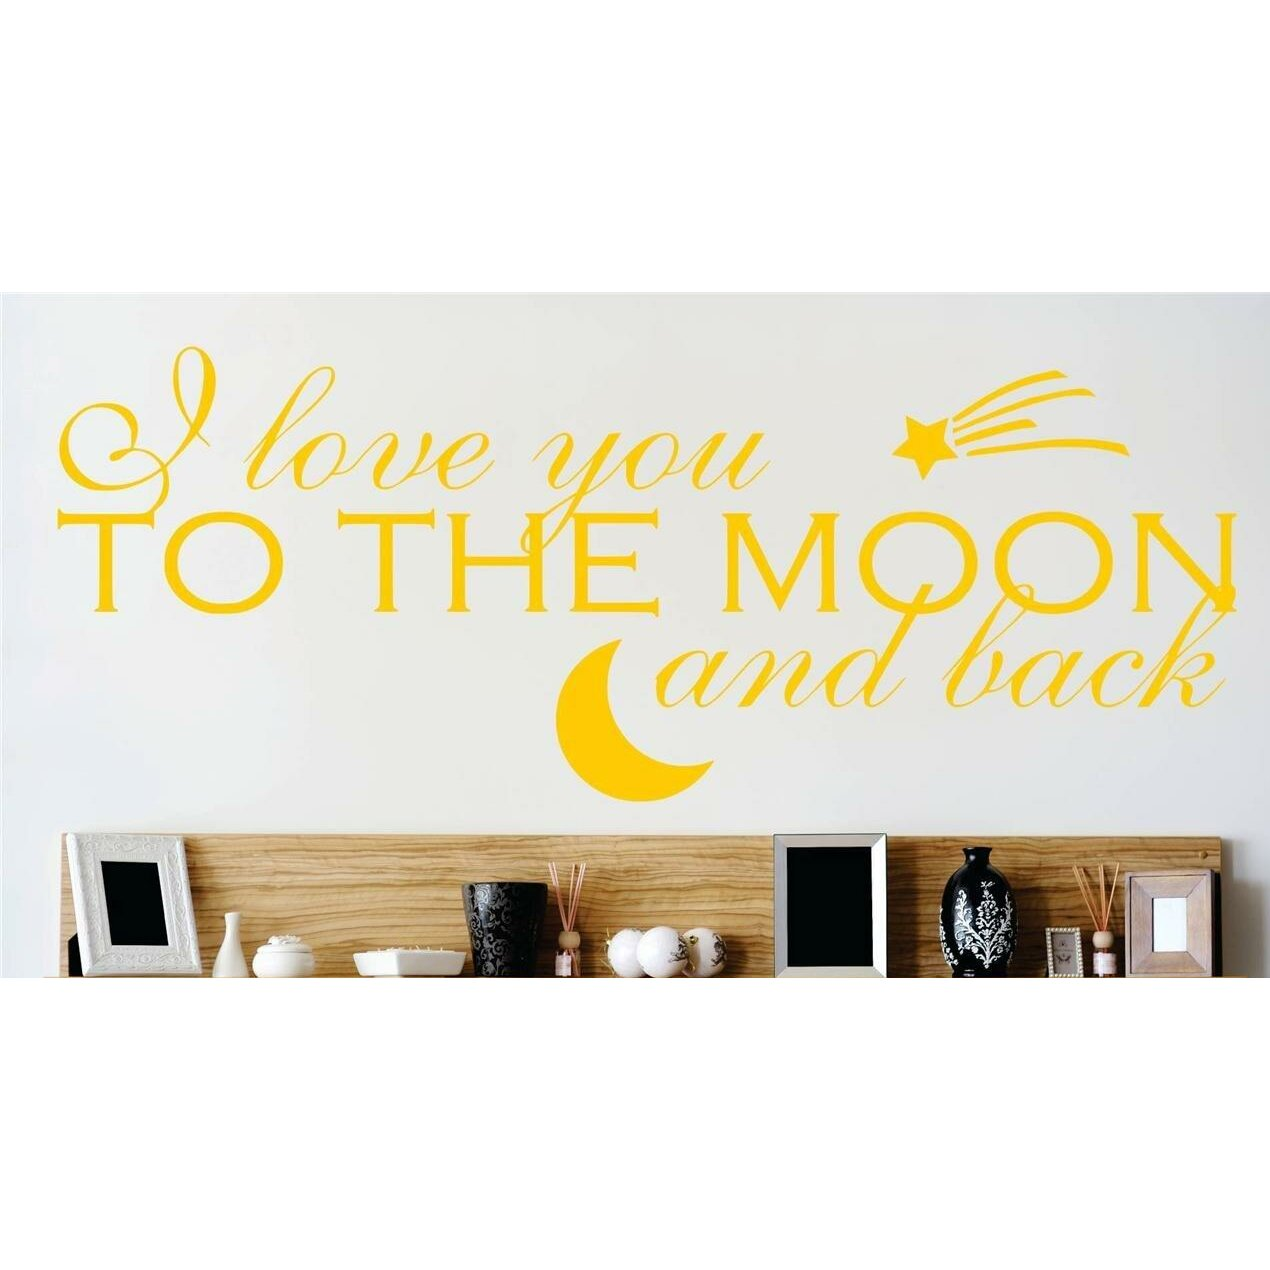 Wall Stickers Next Day Delivery · Wall Stickers Next Day Delivery Part 47